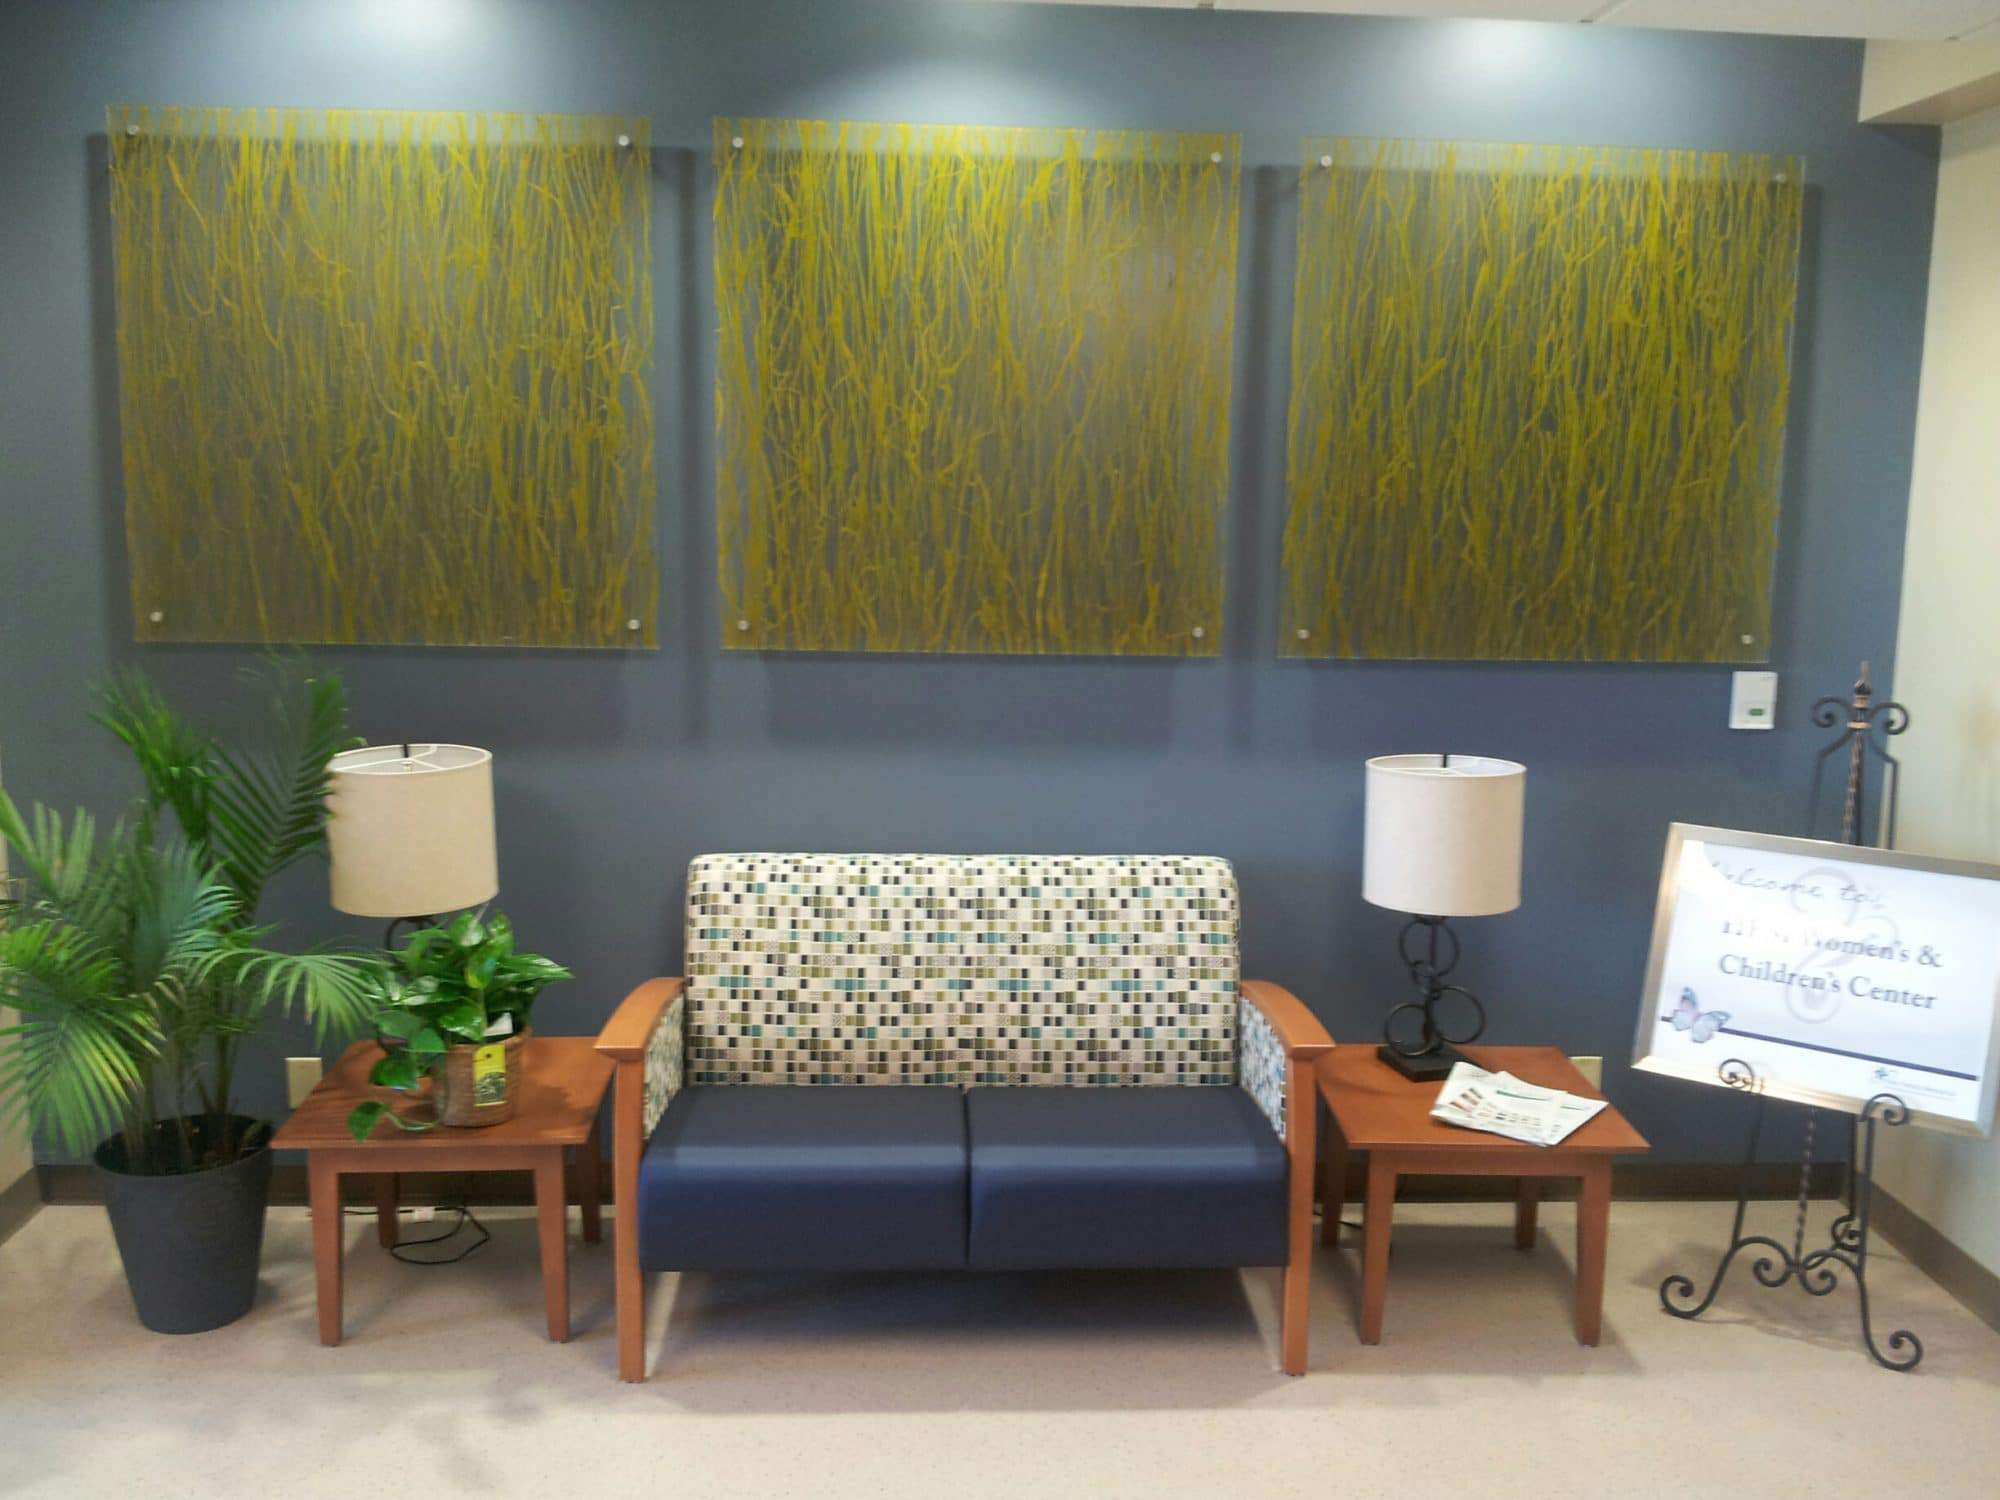 Supporting a Healing Environment Interior Design and Healthcare